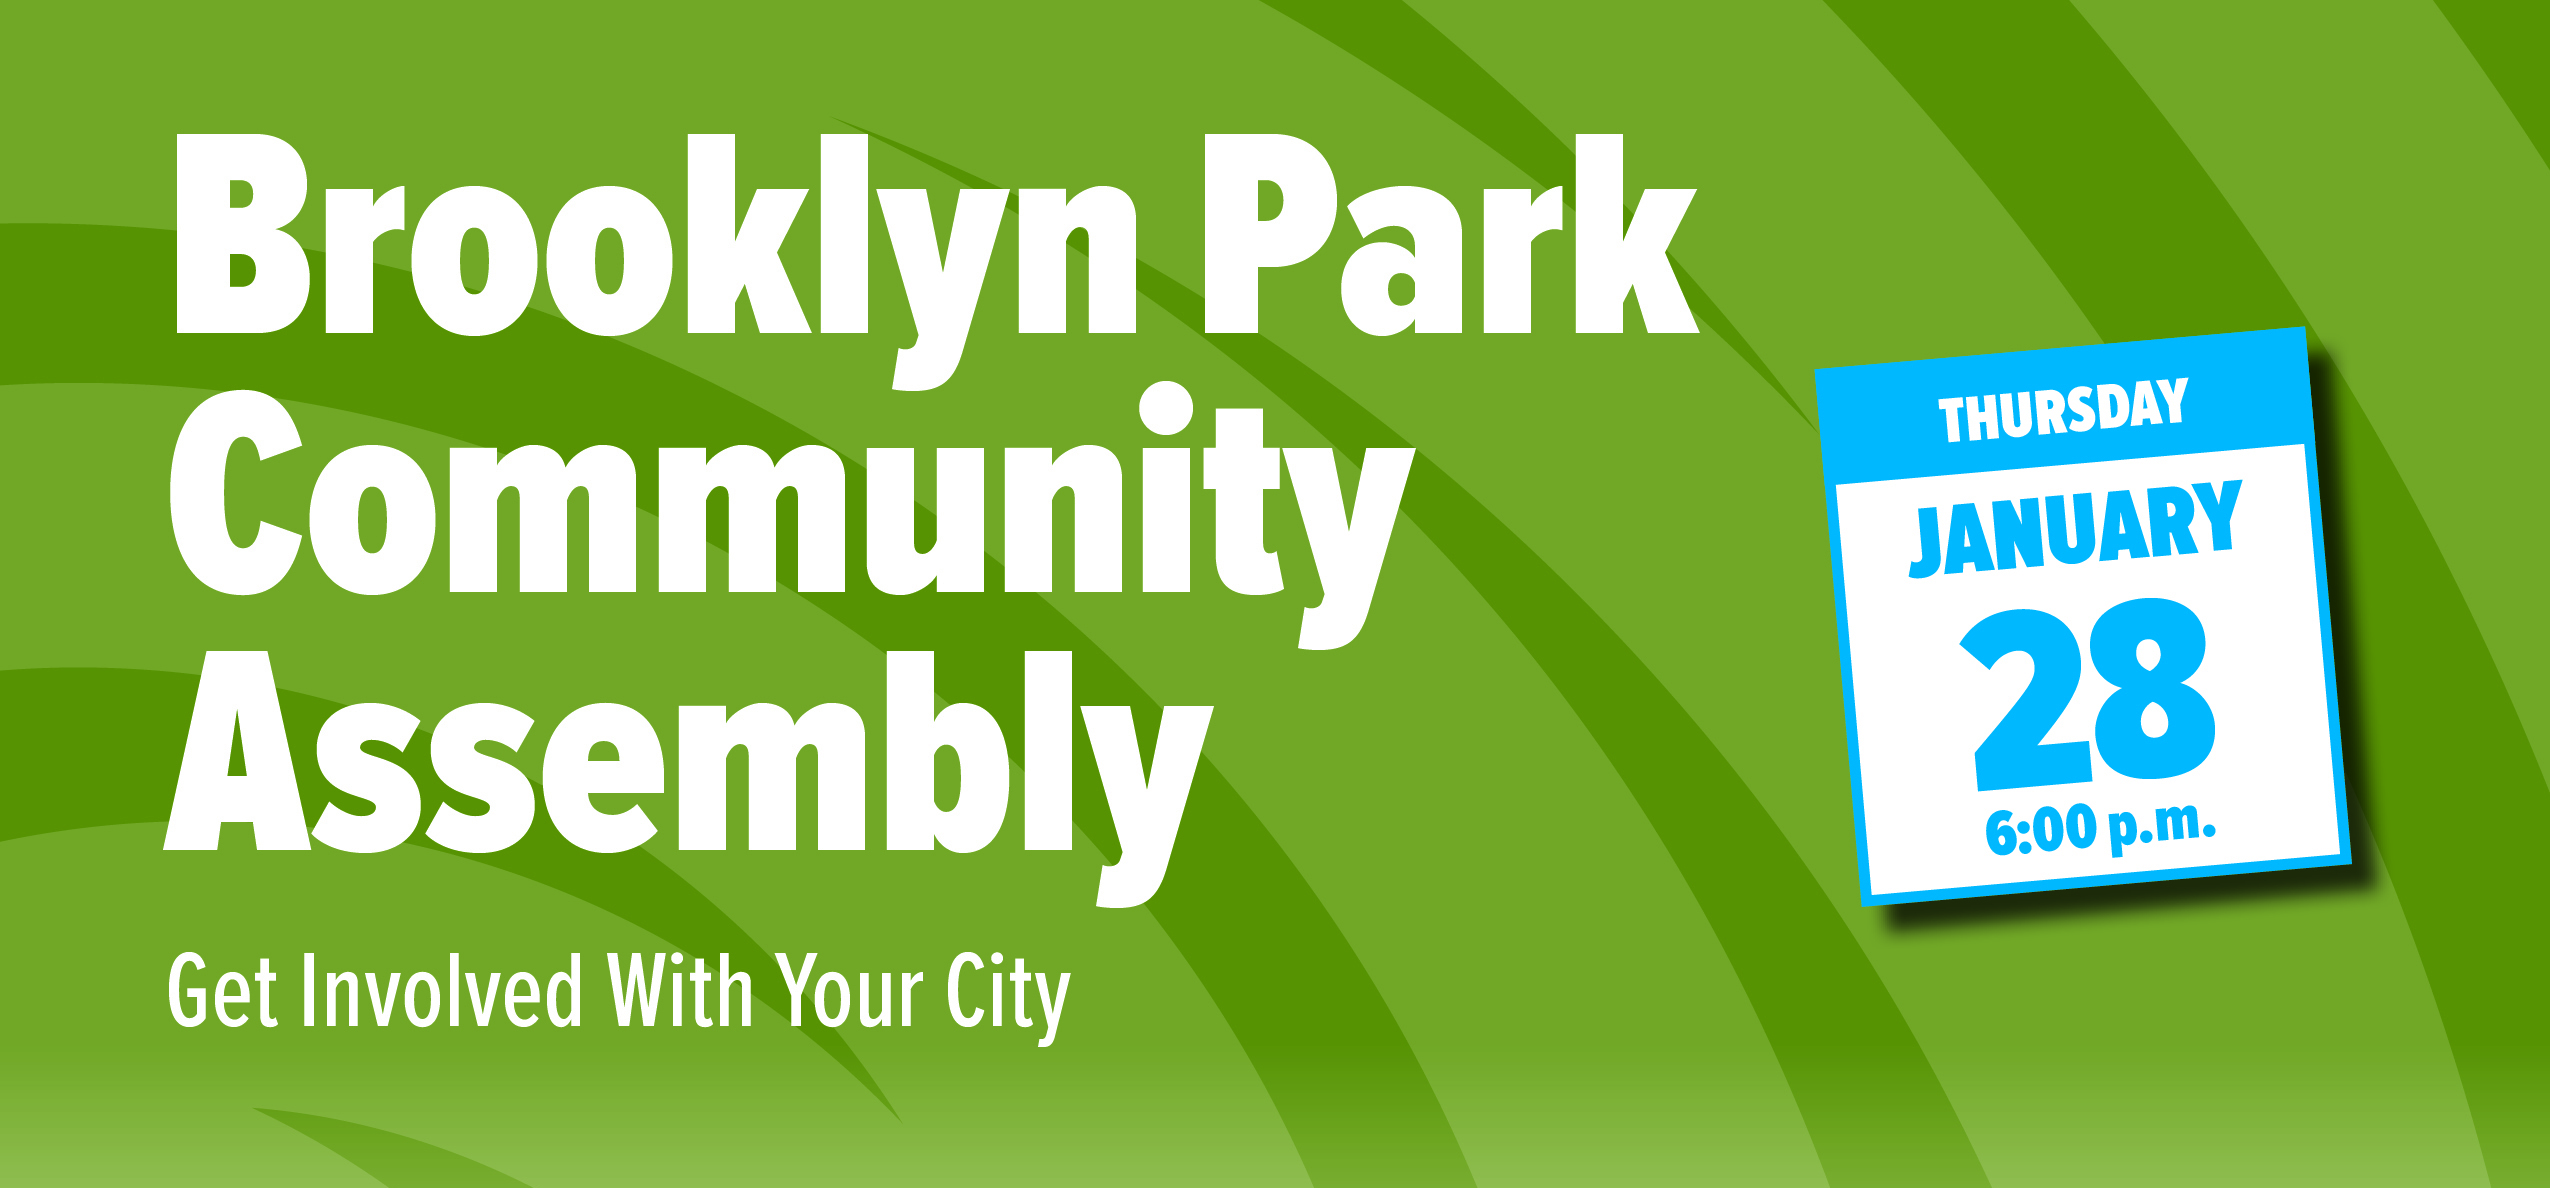 Brooklyn Park Community Assembly. Get involved with your city. Thursday, January 28 6:00 p.m.